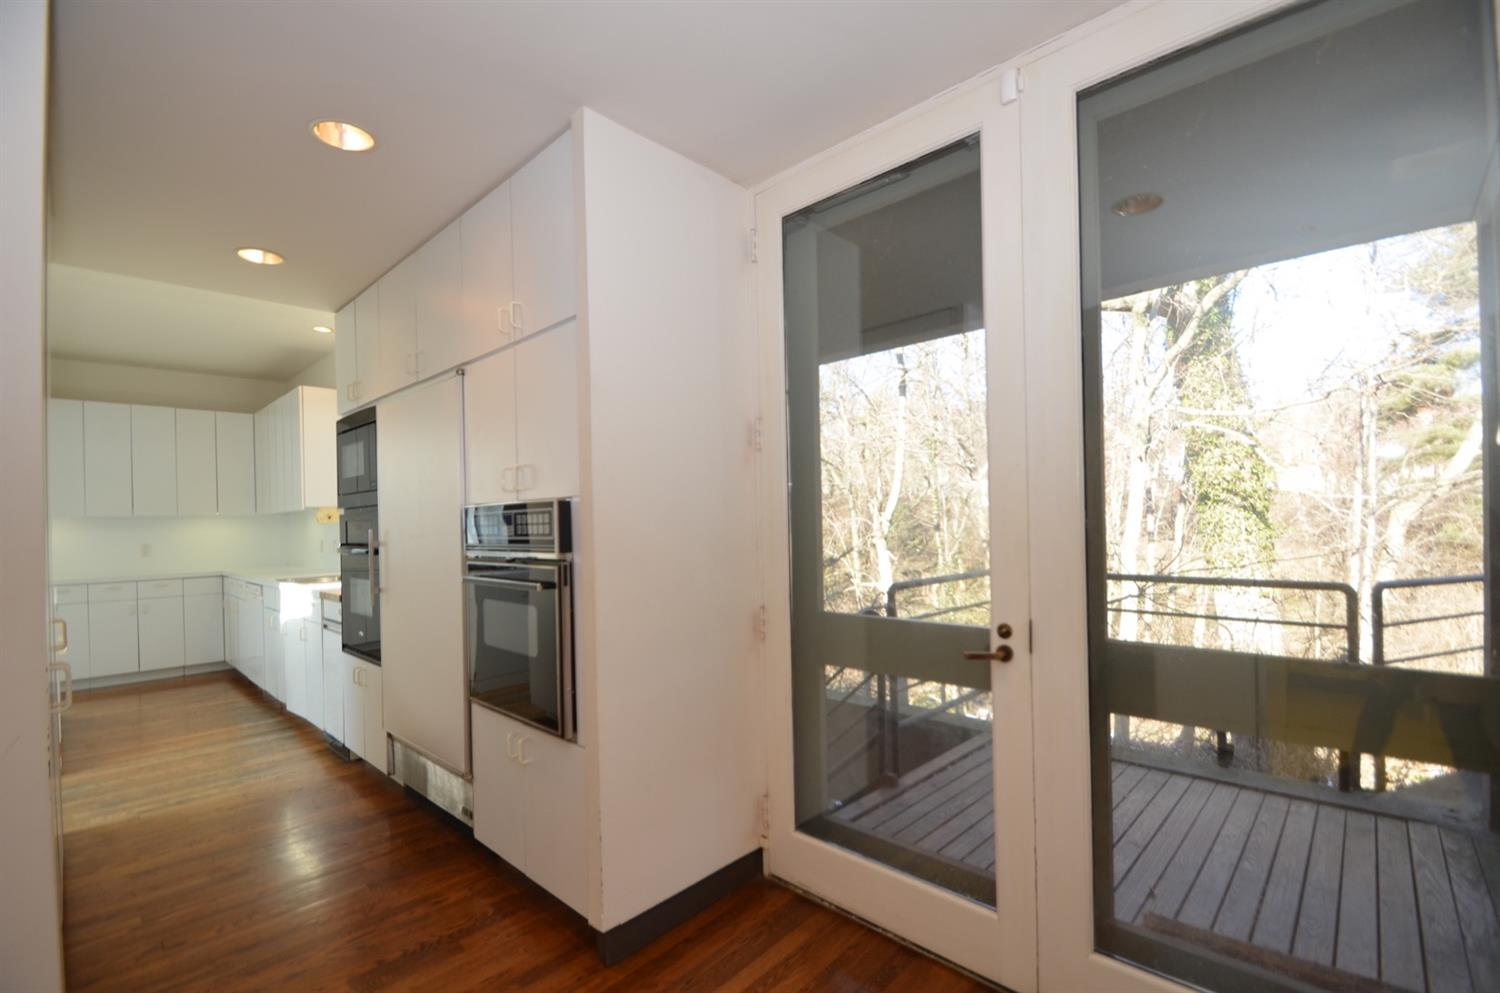 The extended kitchen adjoins the home's service entry.